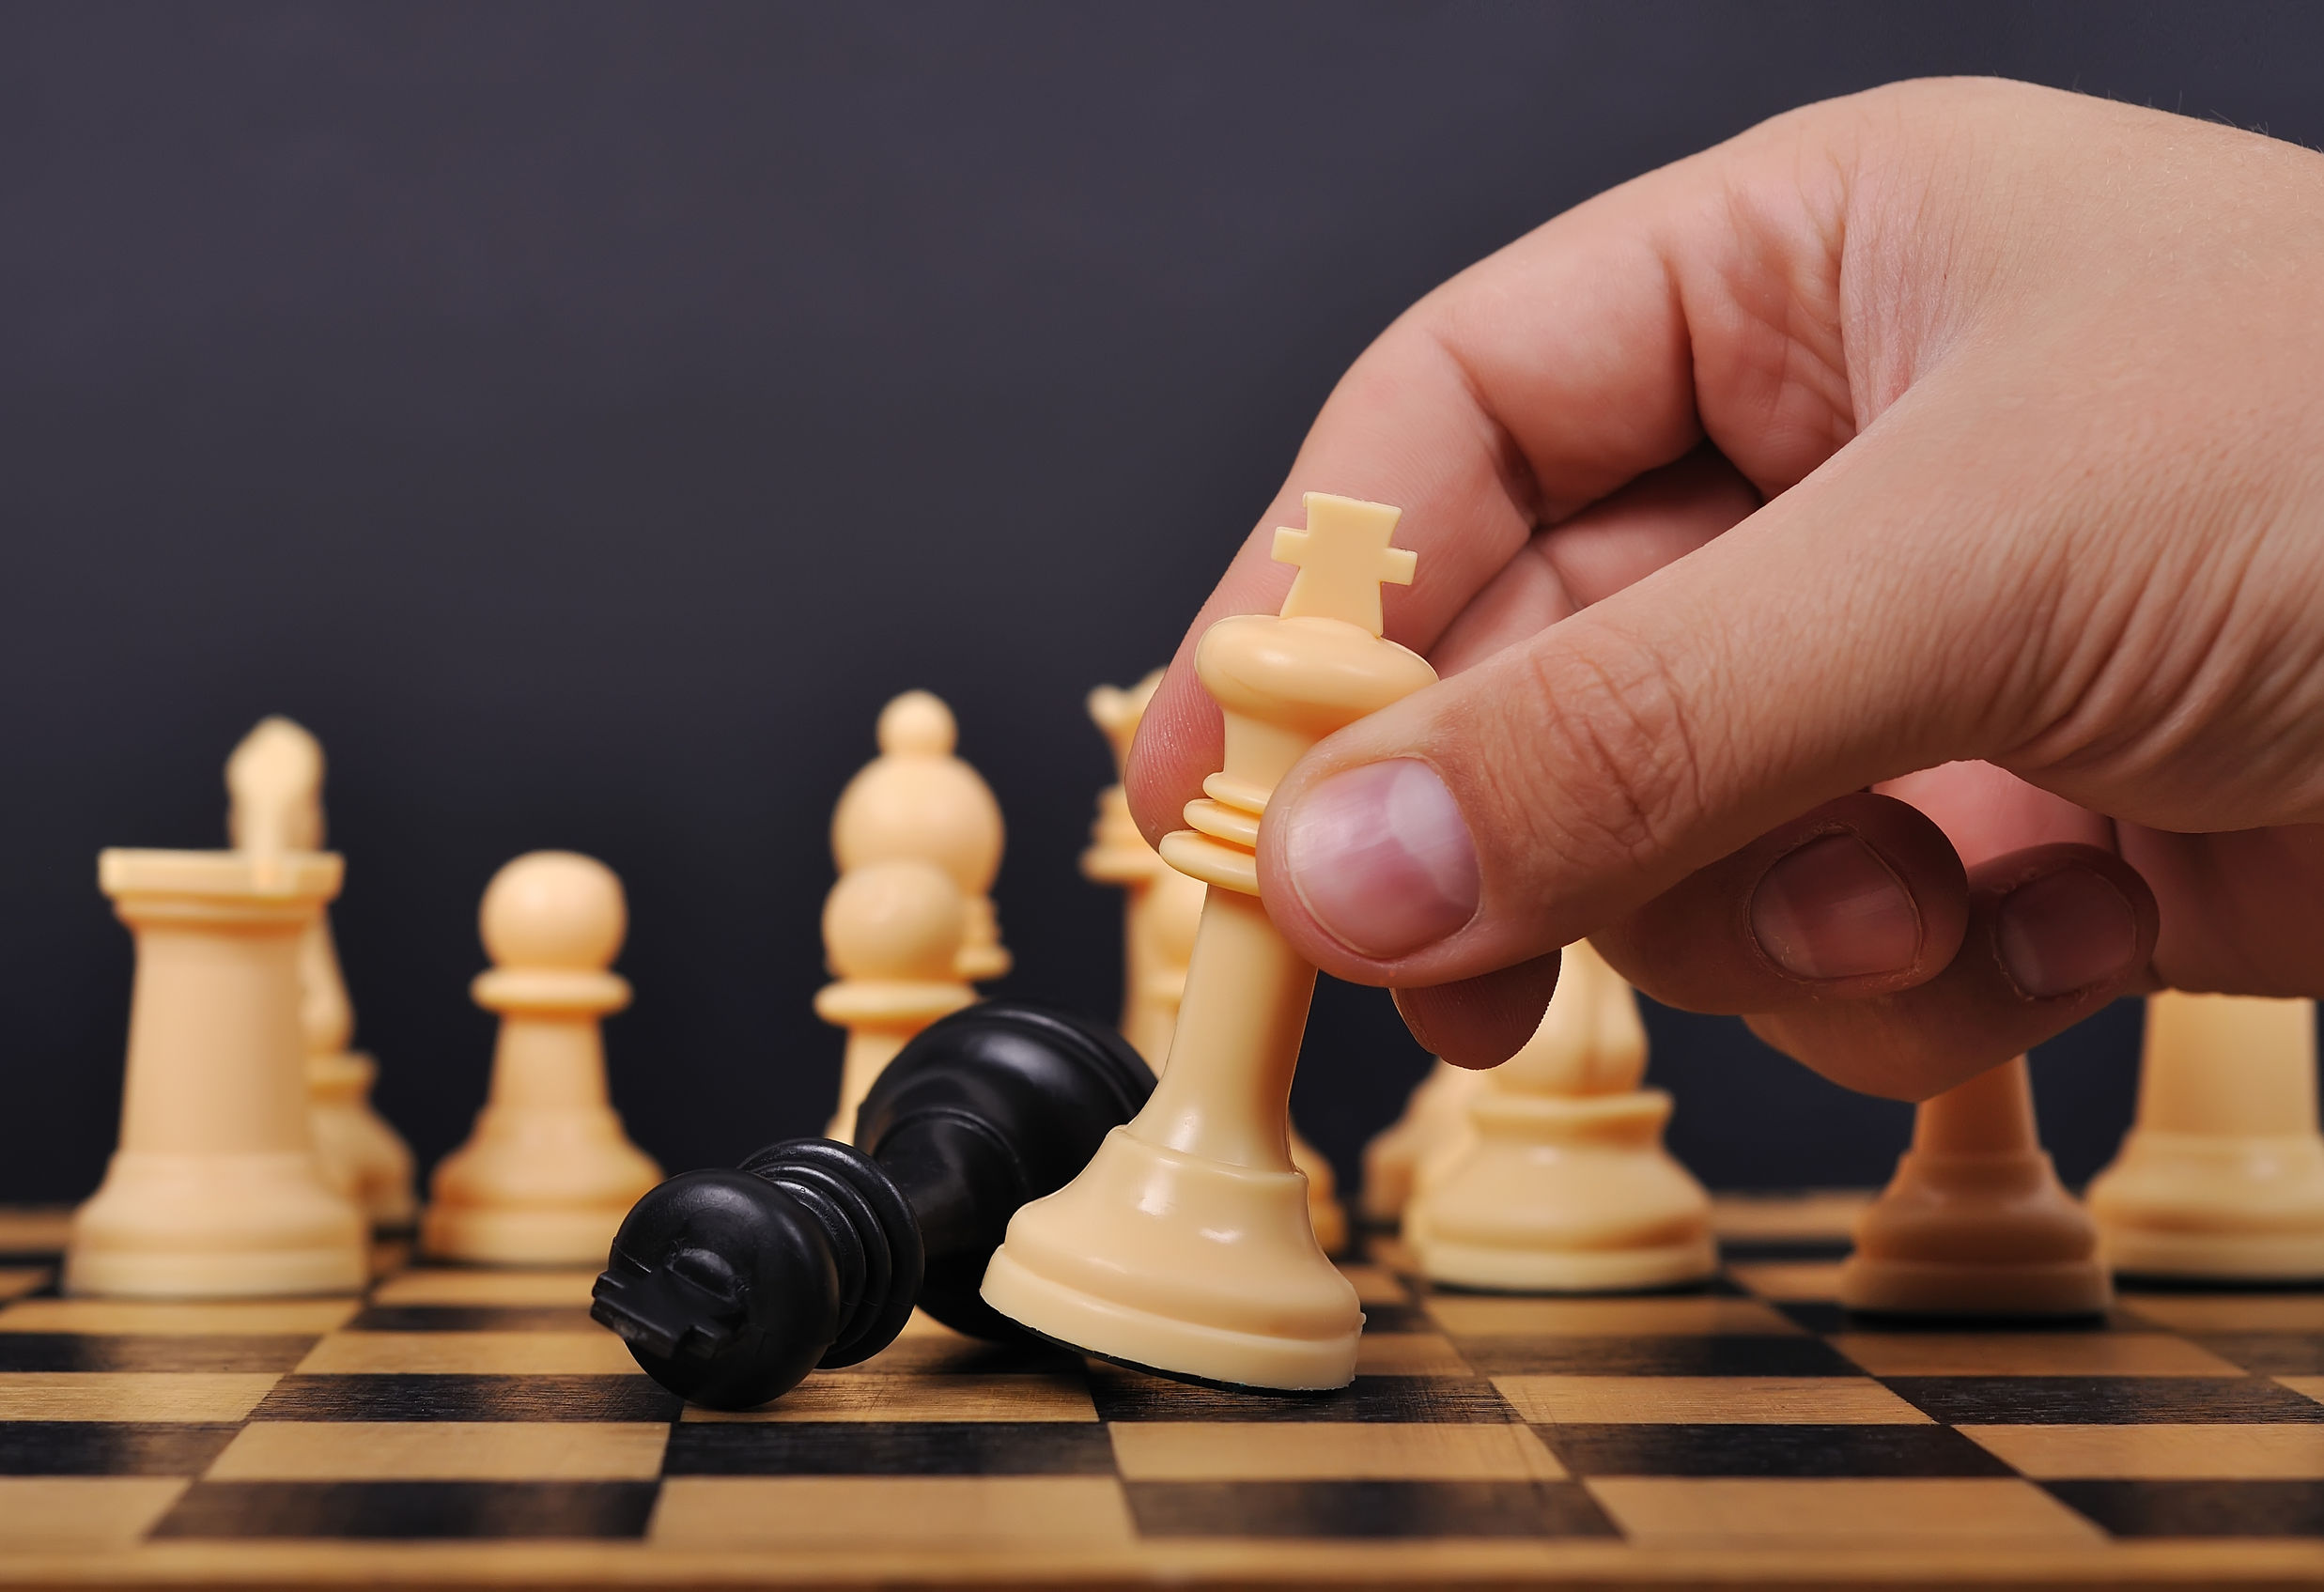 Best Chess Set 2020: Shopping Guide & Review